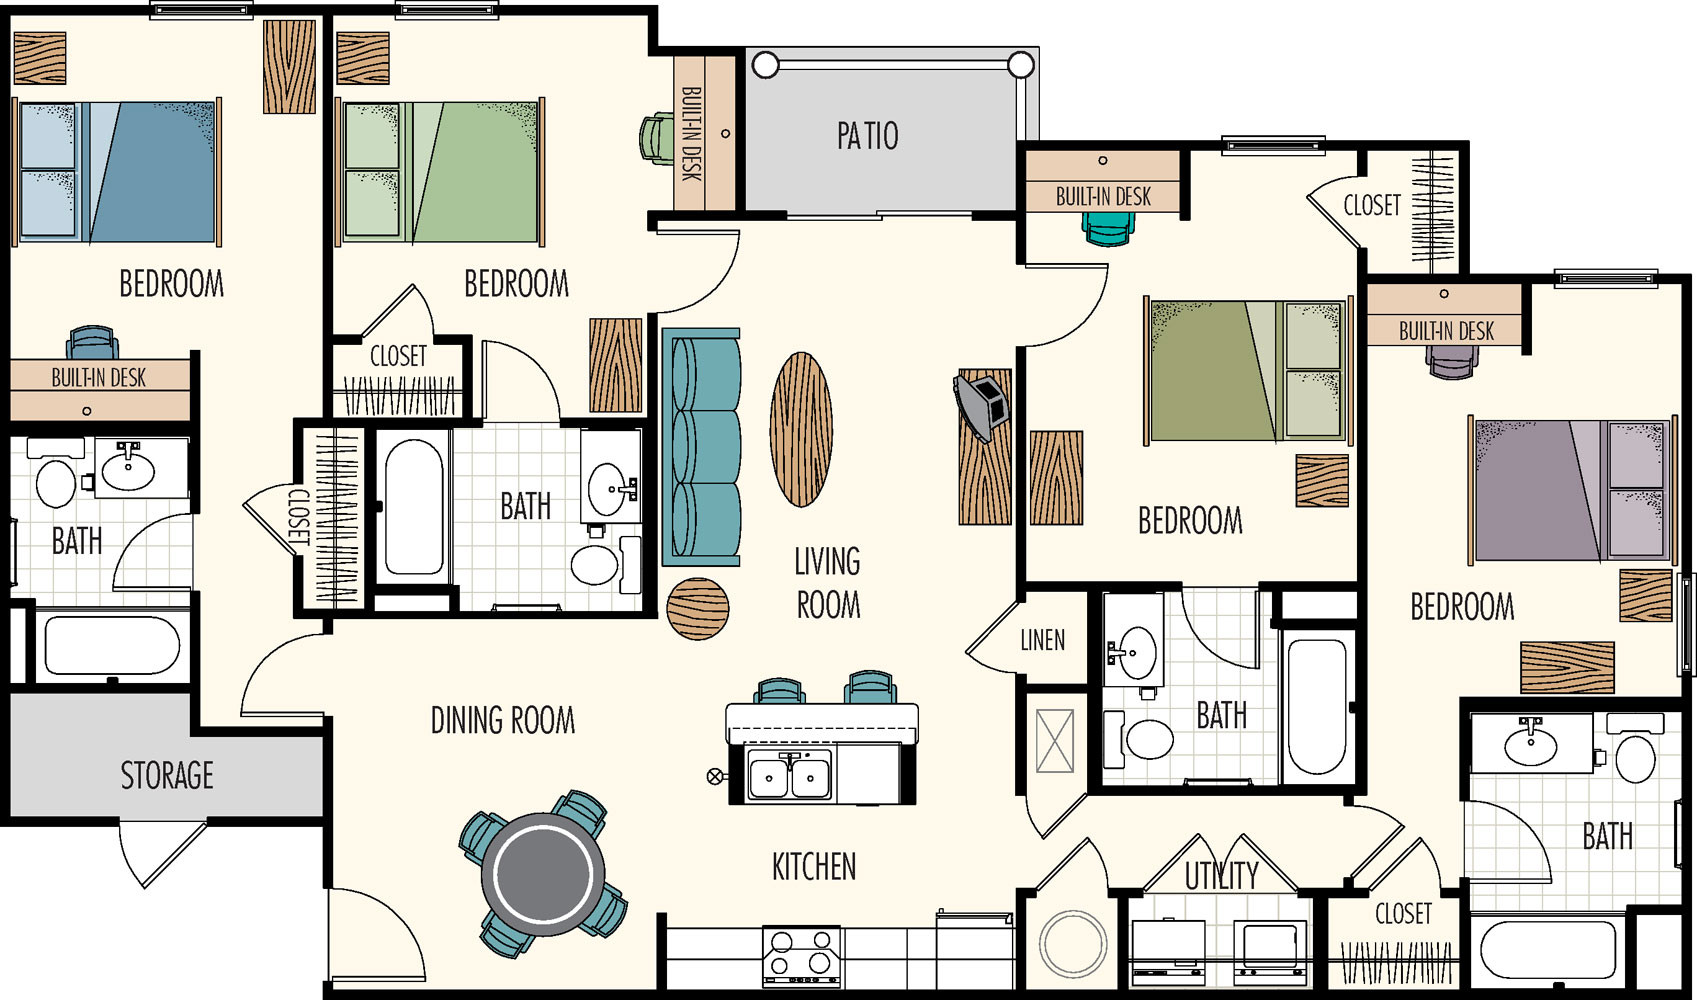 Best ideas about 4 Bedroom Floor Plans . Save or Pin Floor Plans Hasbrouck ManagementHasbrouck Management Now.